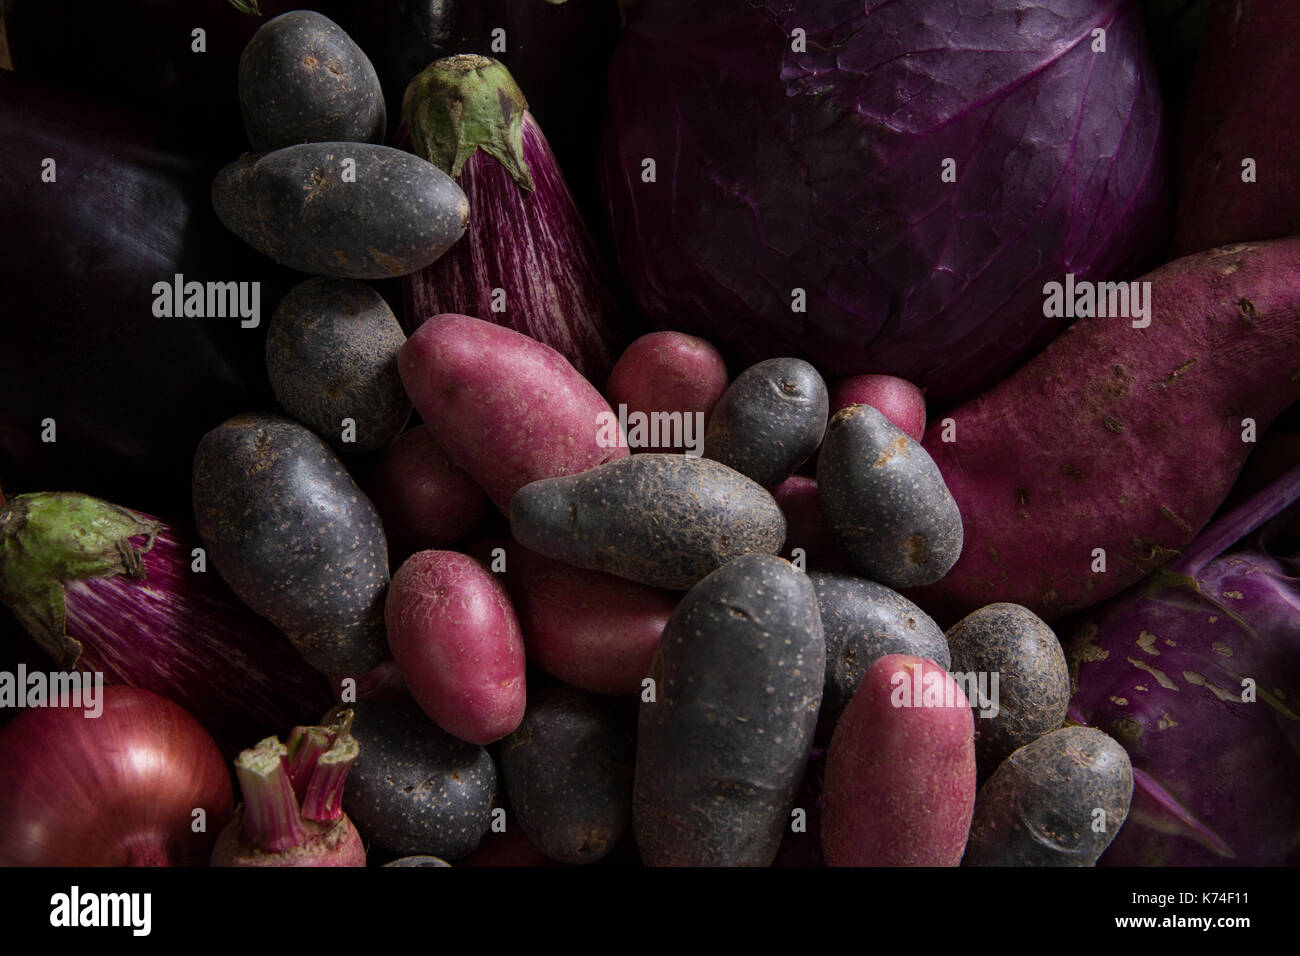 Close-up of various fresh vegetables - Stock Image